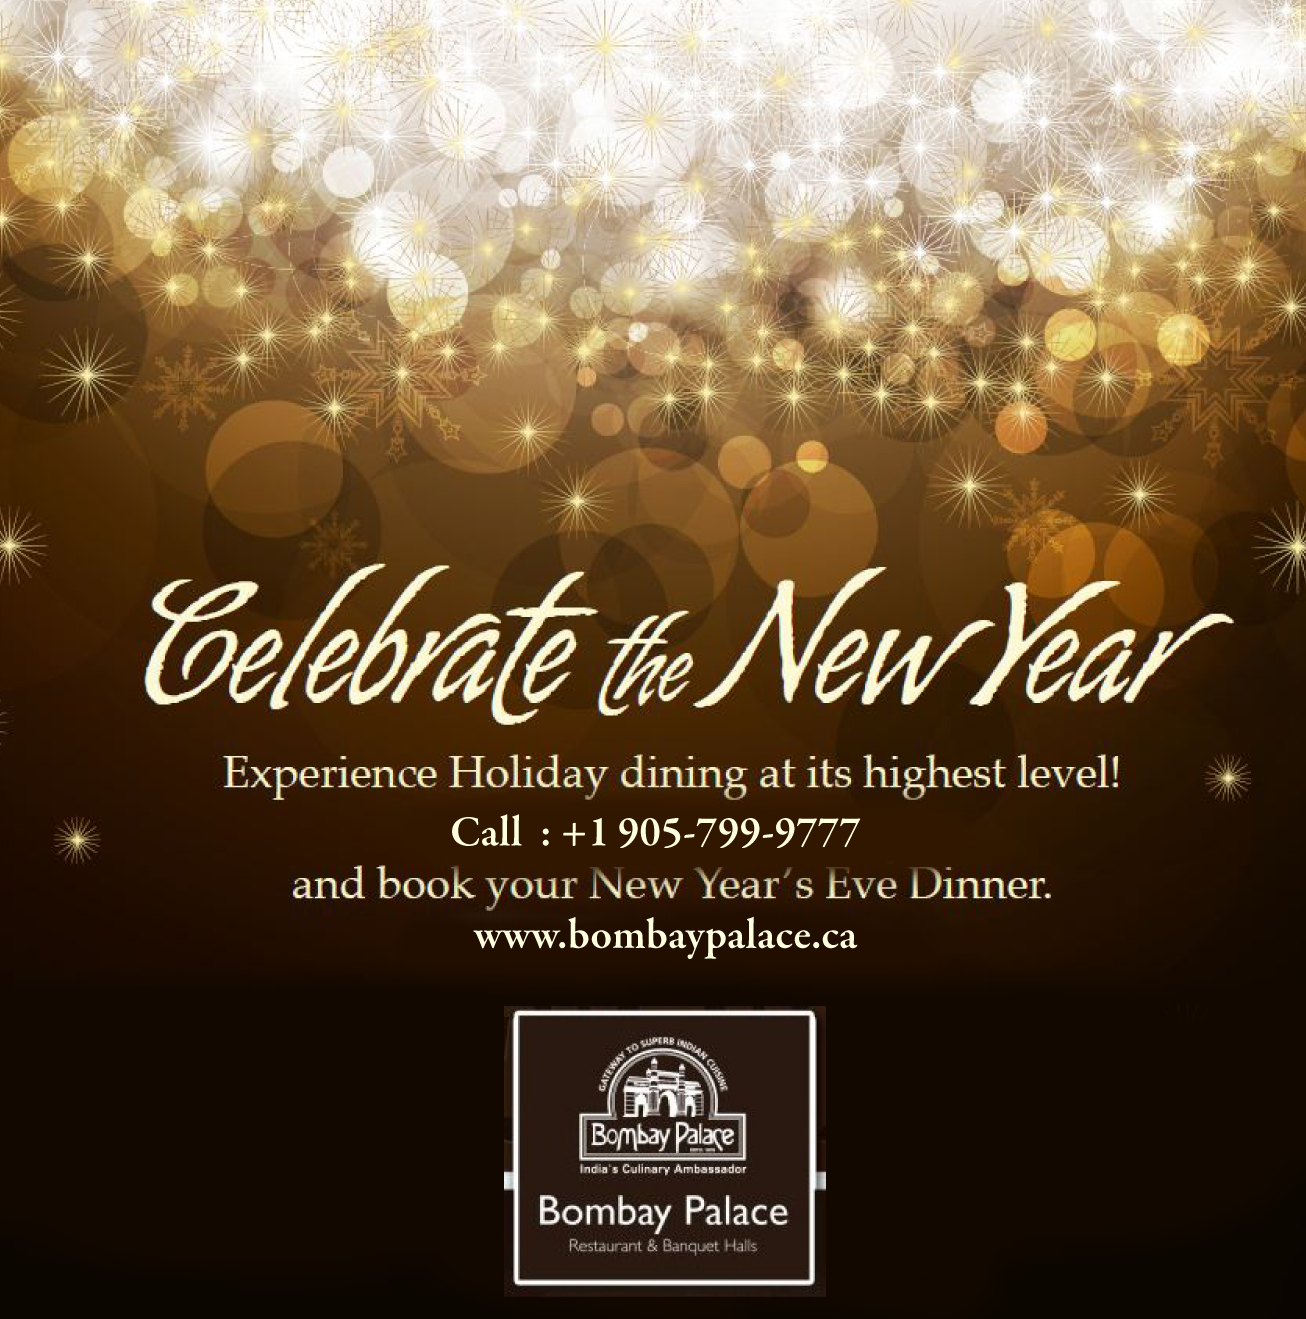 Pin By Bombay Palace Brampton On Bombay Palace New Years Eve Dinner Dinner Party Invitations Holiday Dining